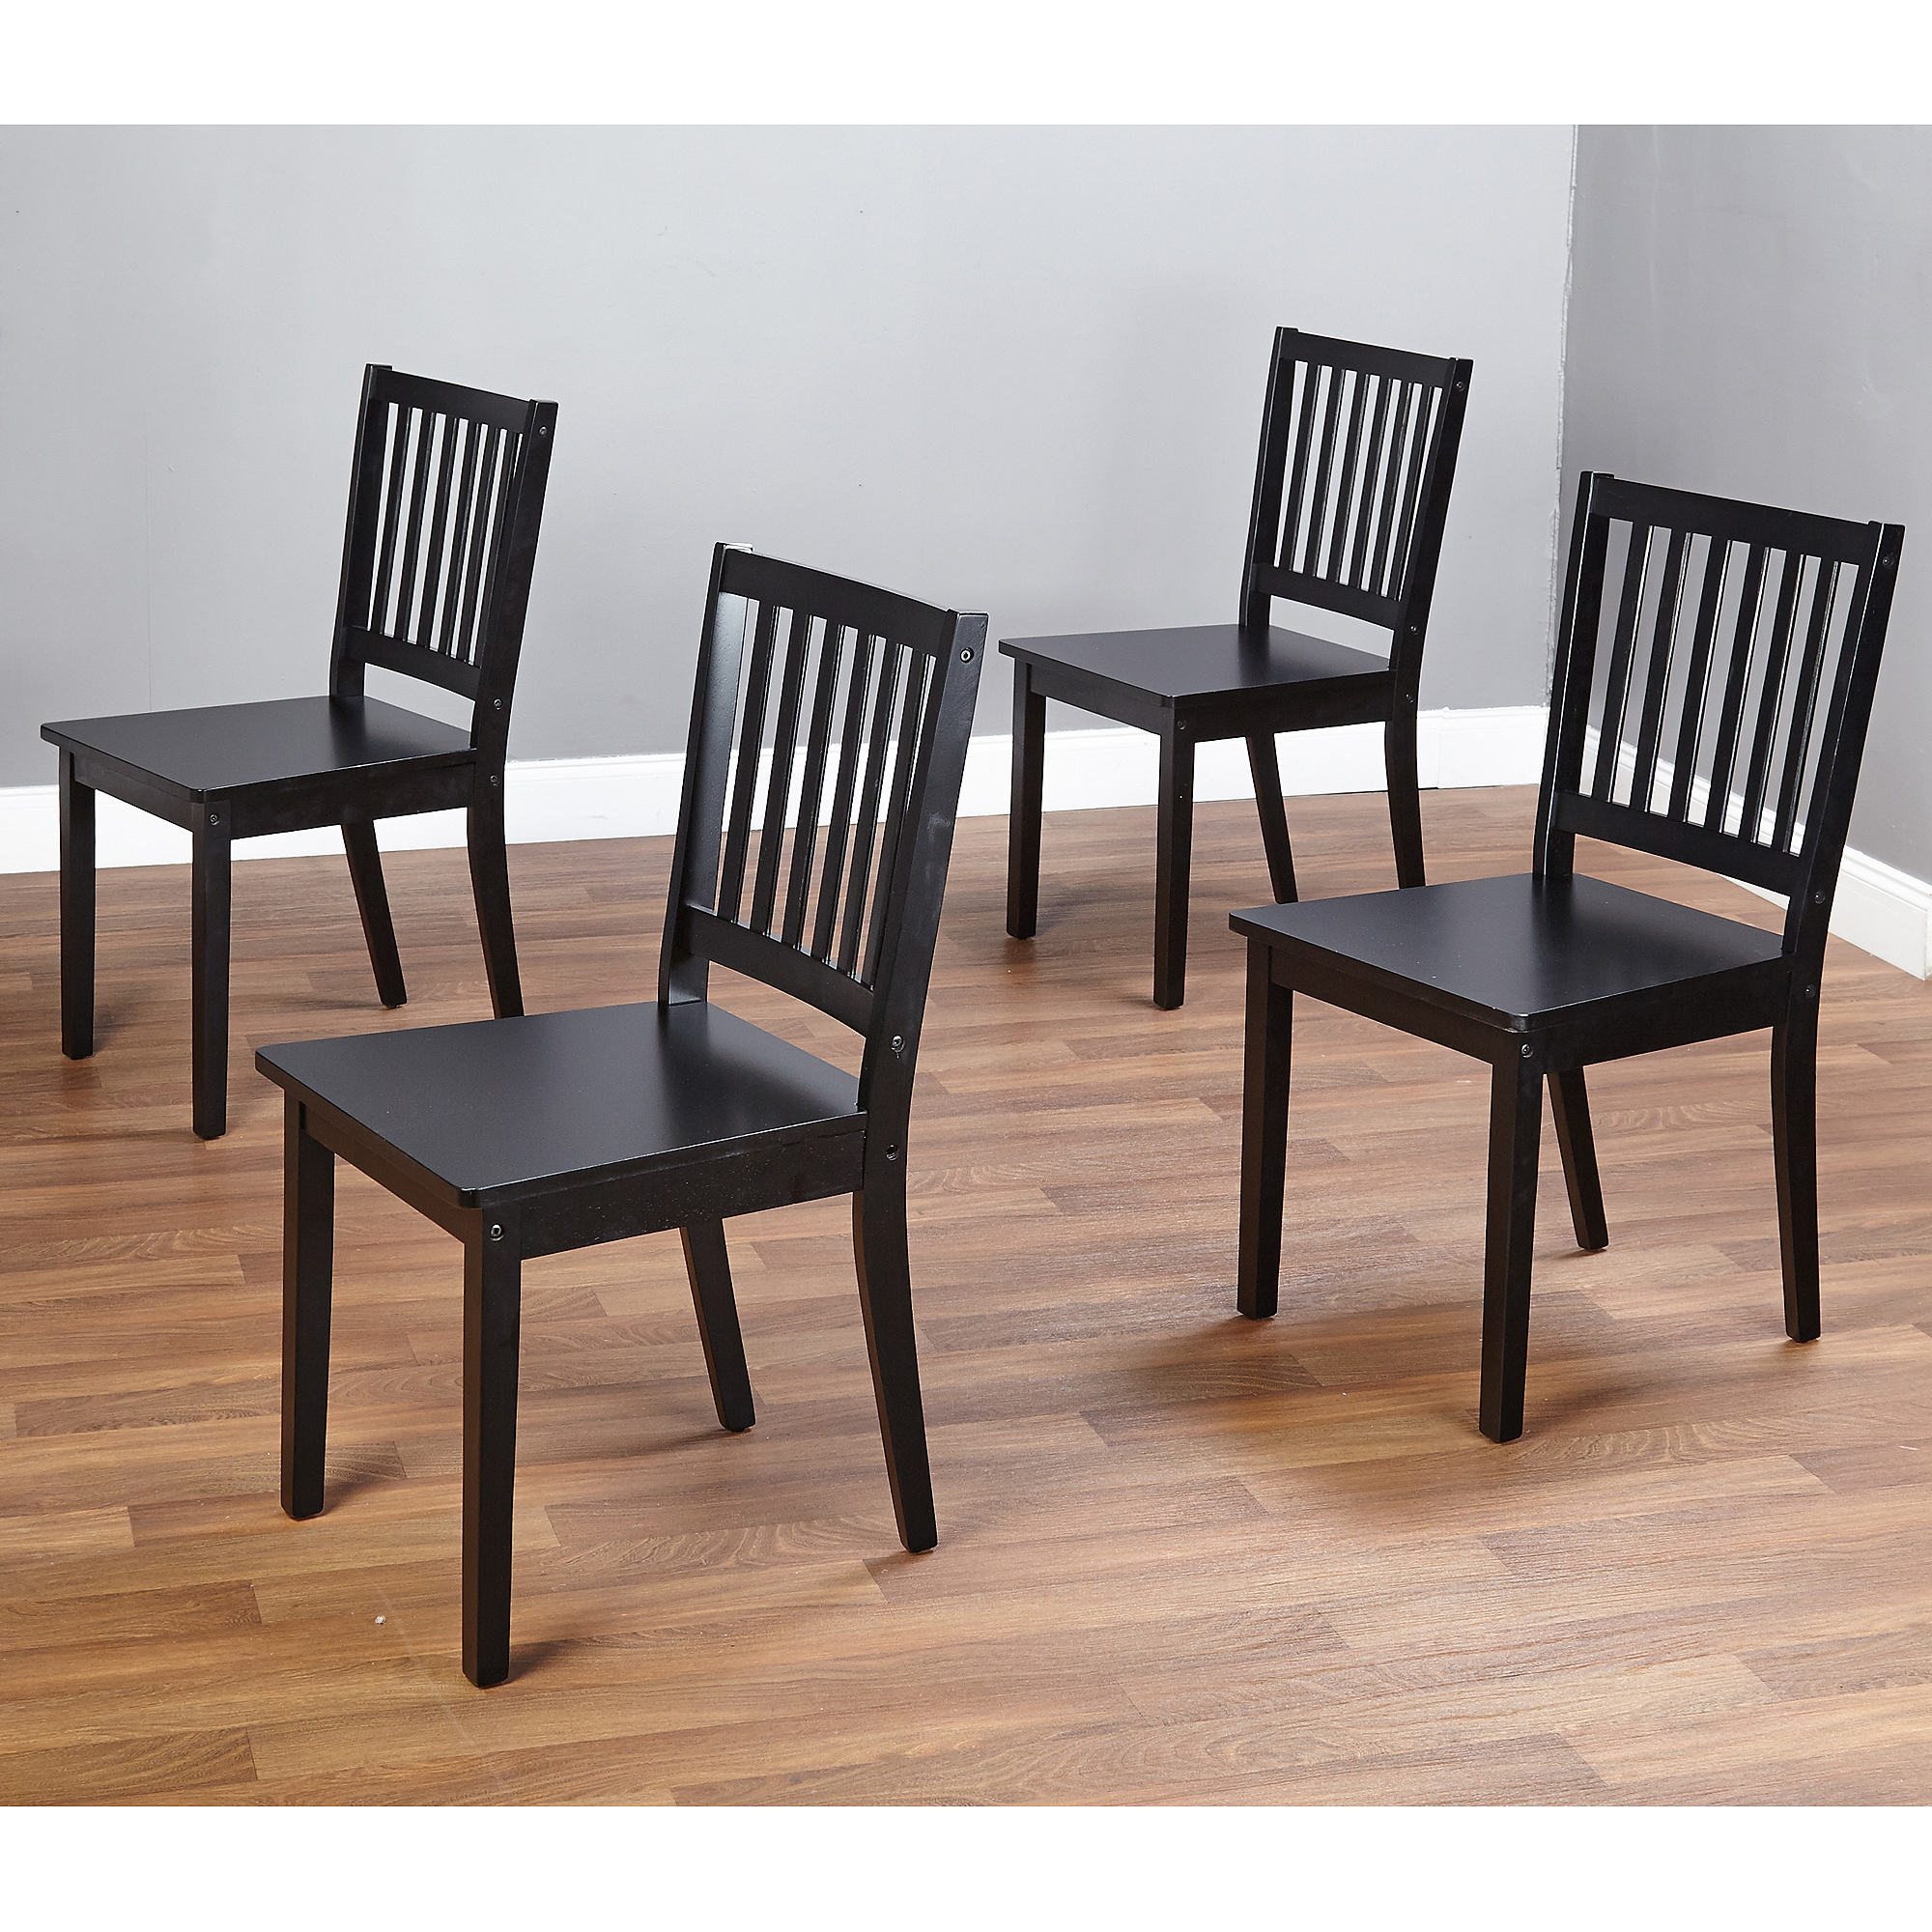 set of chairs small recliner canada shaker dining 4 black ebay 10018blk4